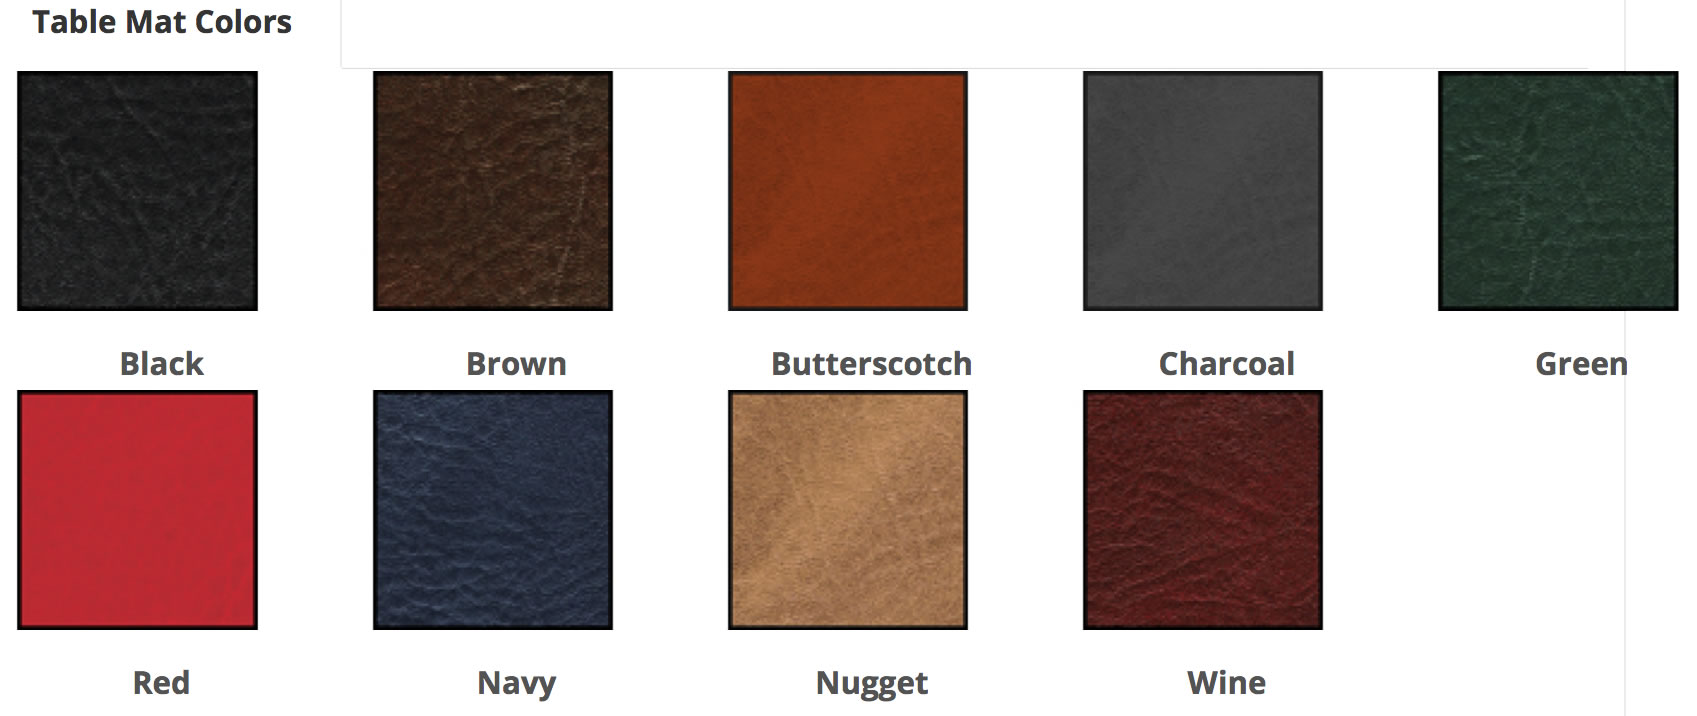 Color swatches for Country Club & Restaurant Table Mats.